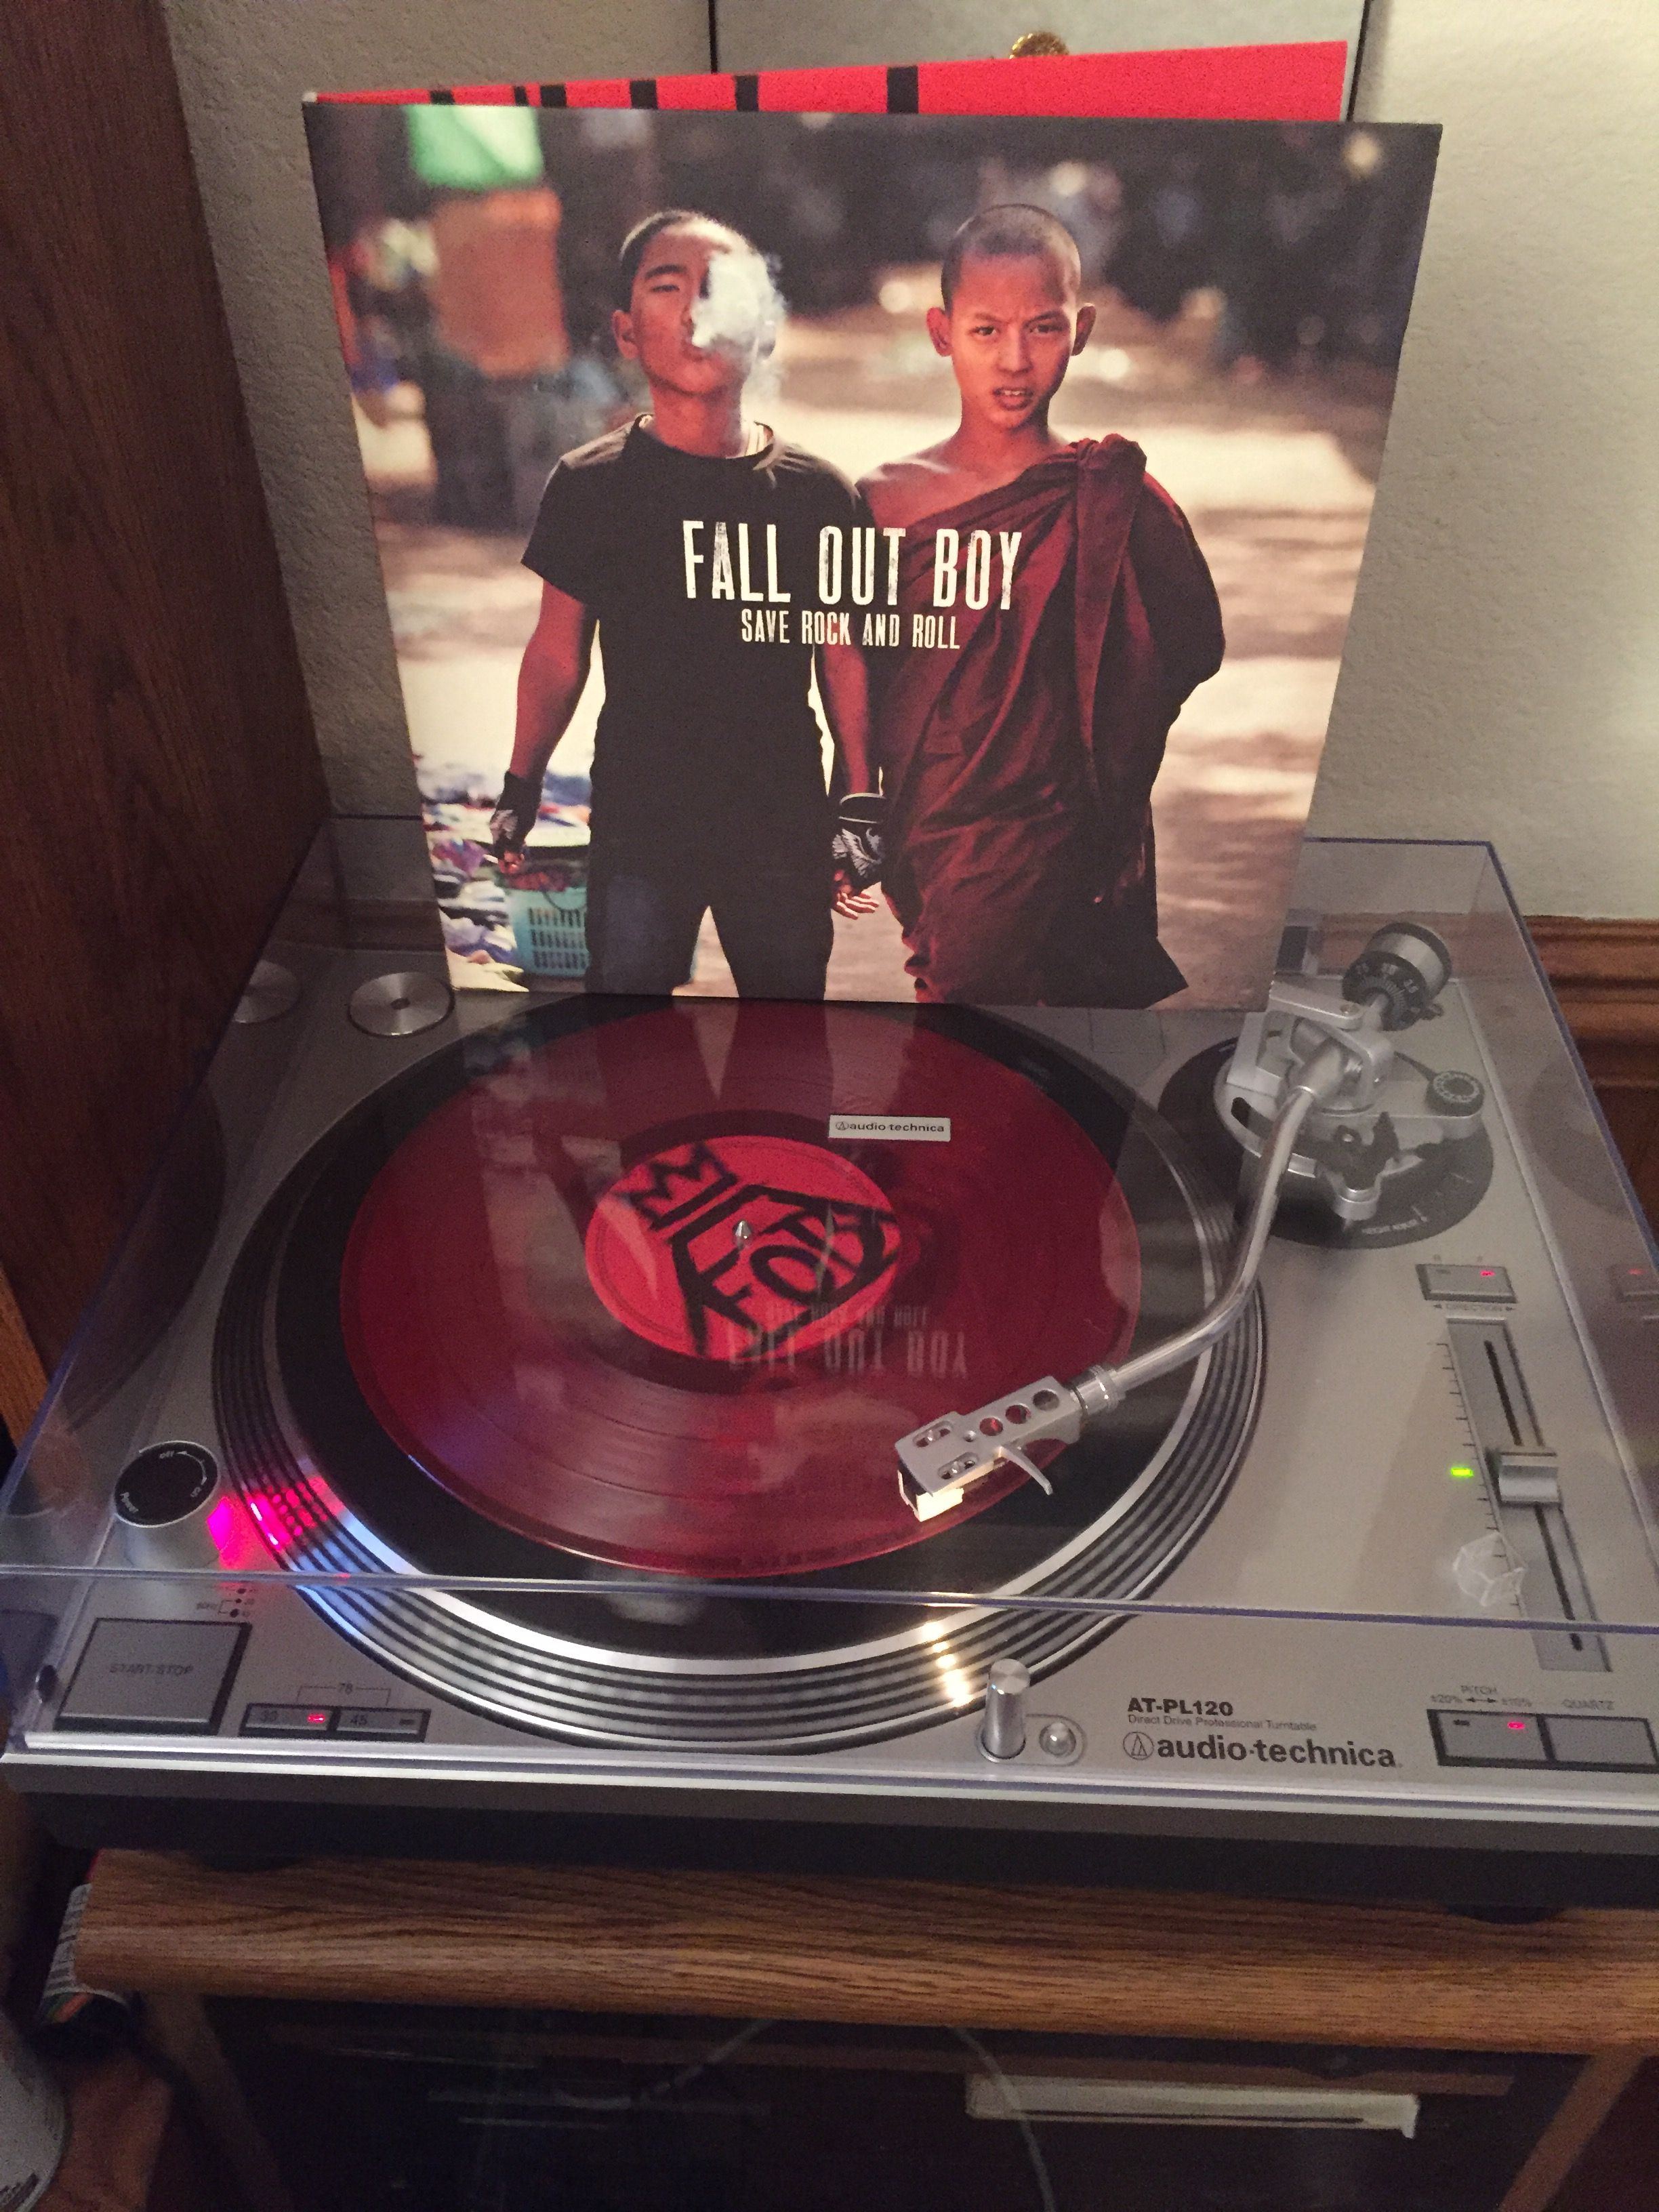 Fall Out Boy Save Rock And Roll 2013 10 Double Lp Red Translucent Vinyl Save Rock And Roll Vinyl Music Vinyl Record Player